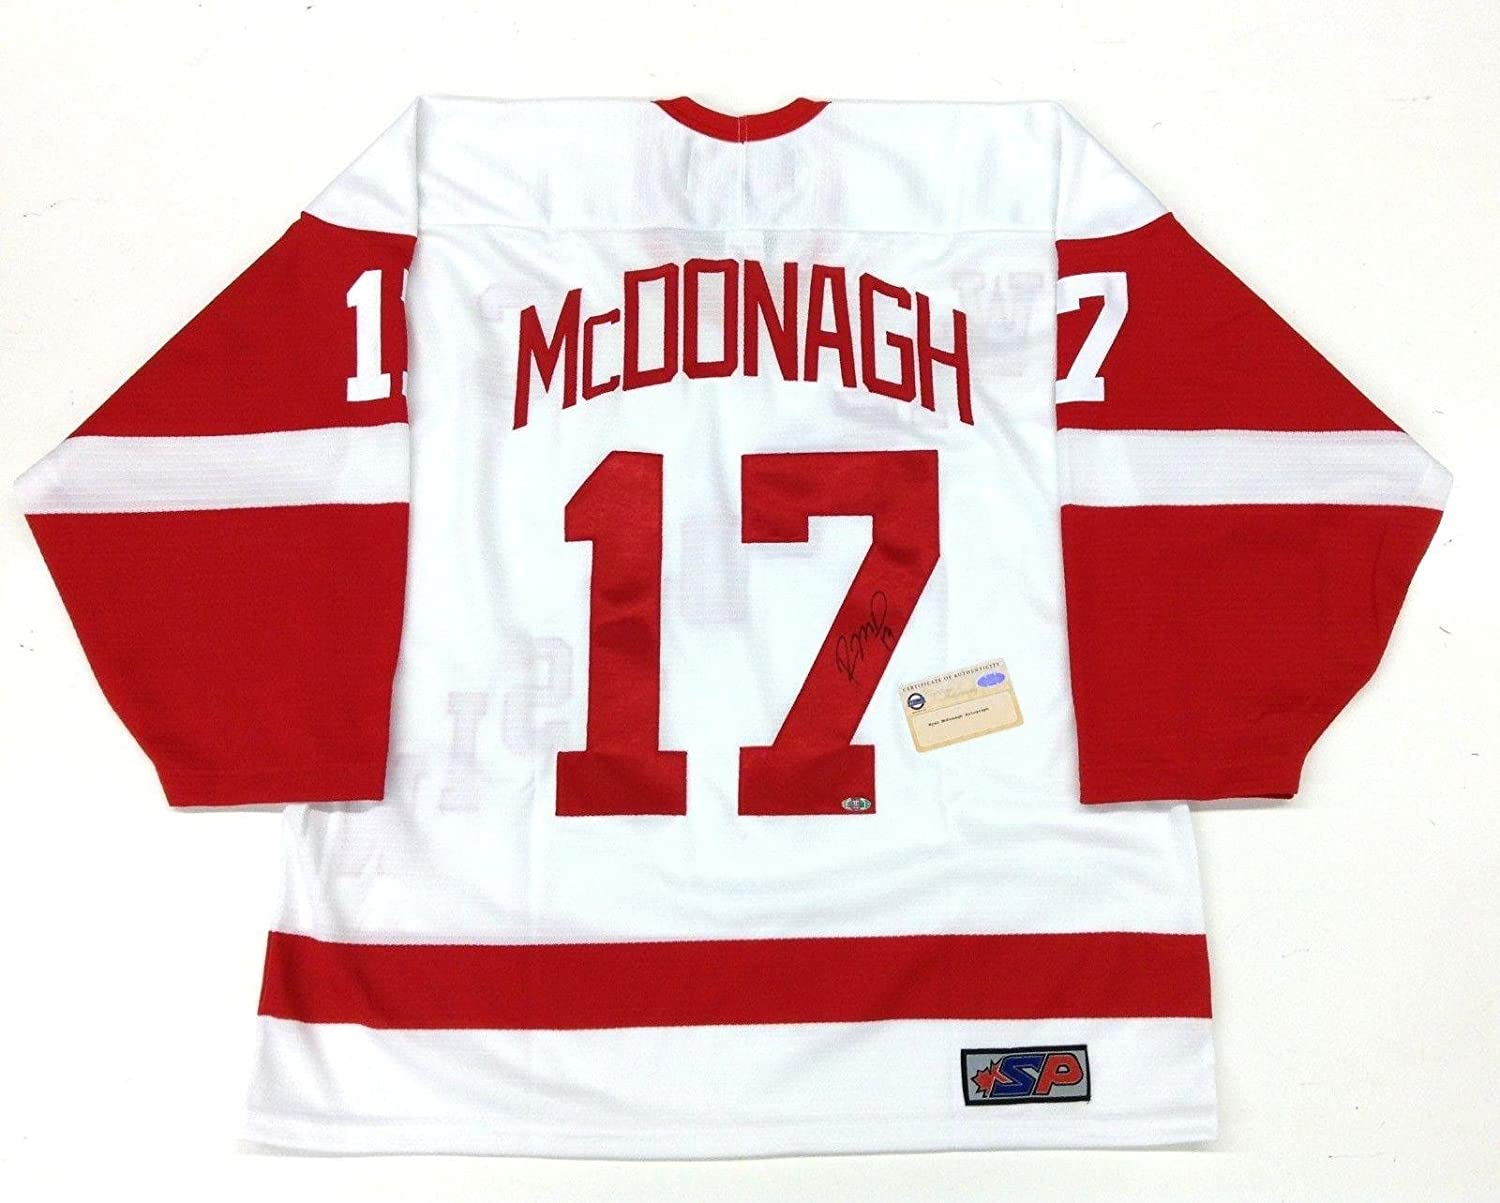 separation shoes 1ae8d ff44c Signed Ryan McDonagh Jersey - WISCONSIN BADGERS COA ...